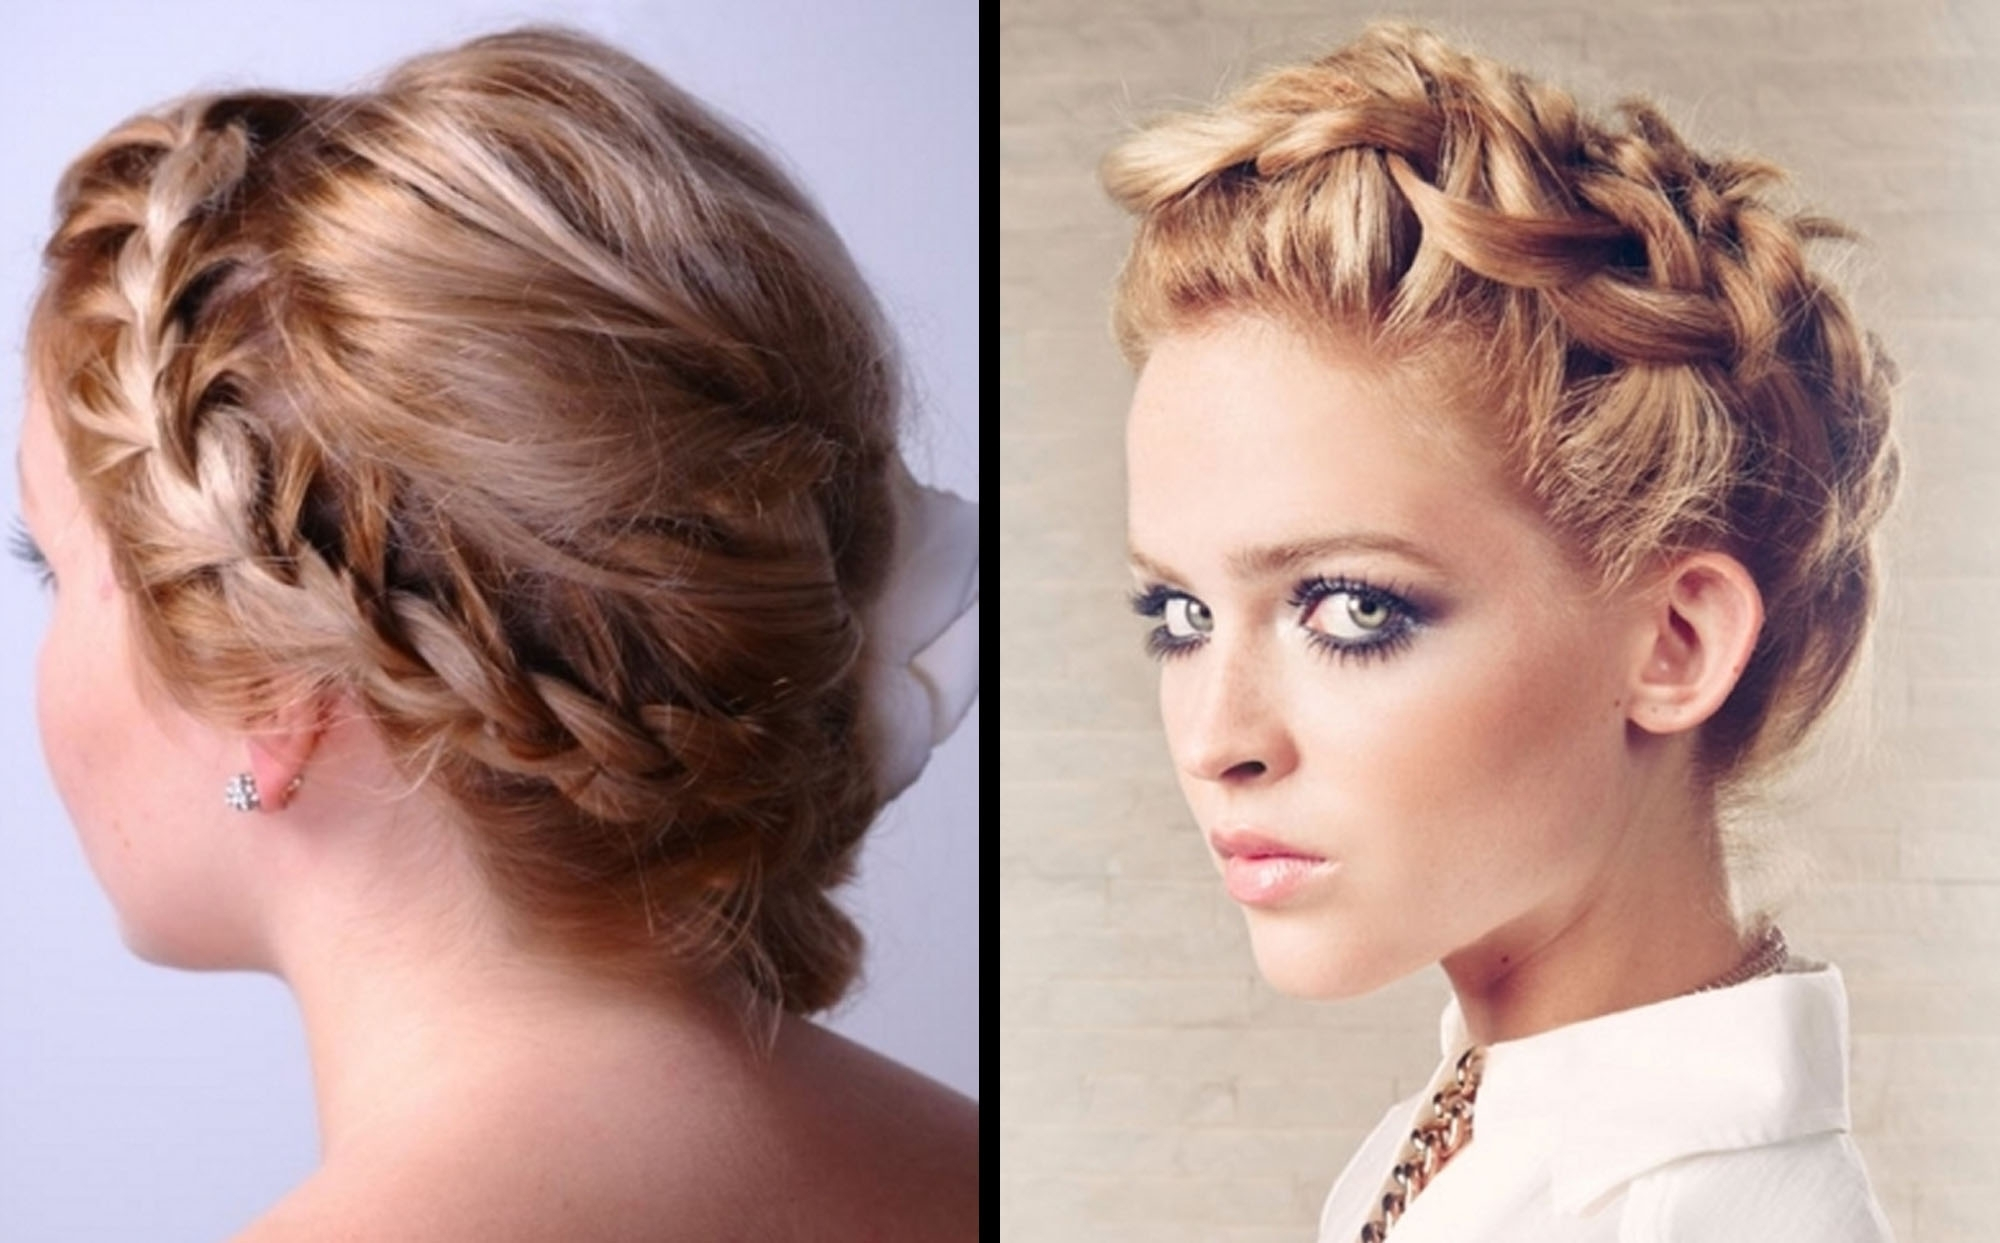 Formal Hairstyles Braided Updo Wedding Hairdo Hair | Medium Hair Within Wedding Updo Hairstyles For Short Hair (View 8 of 15)